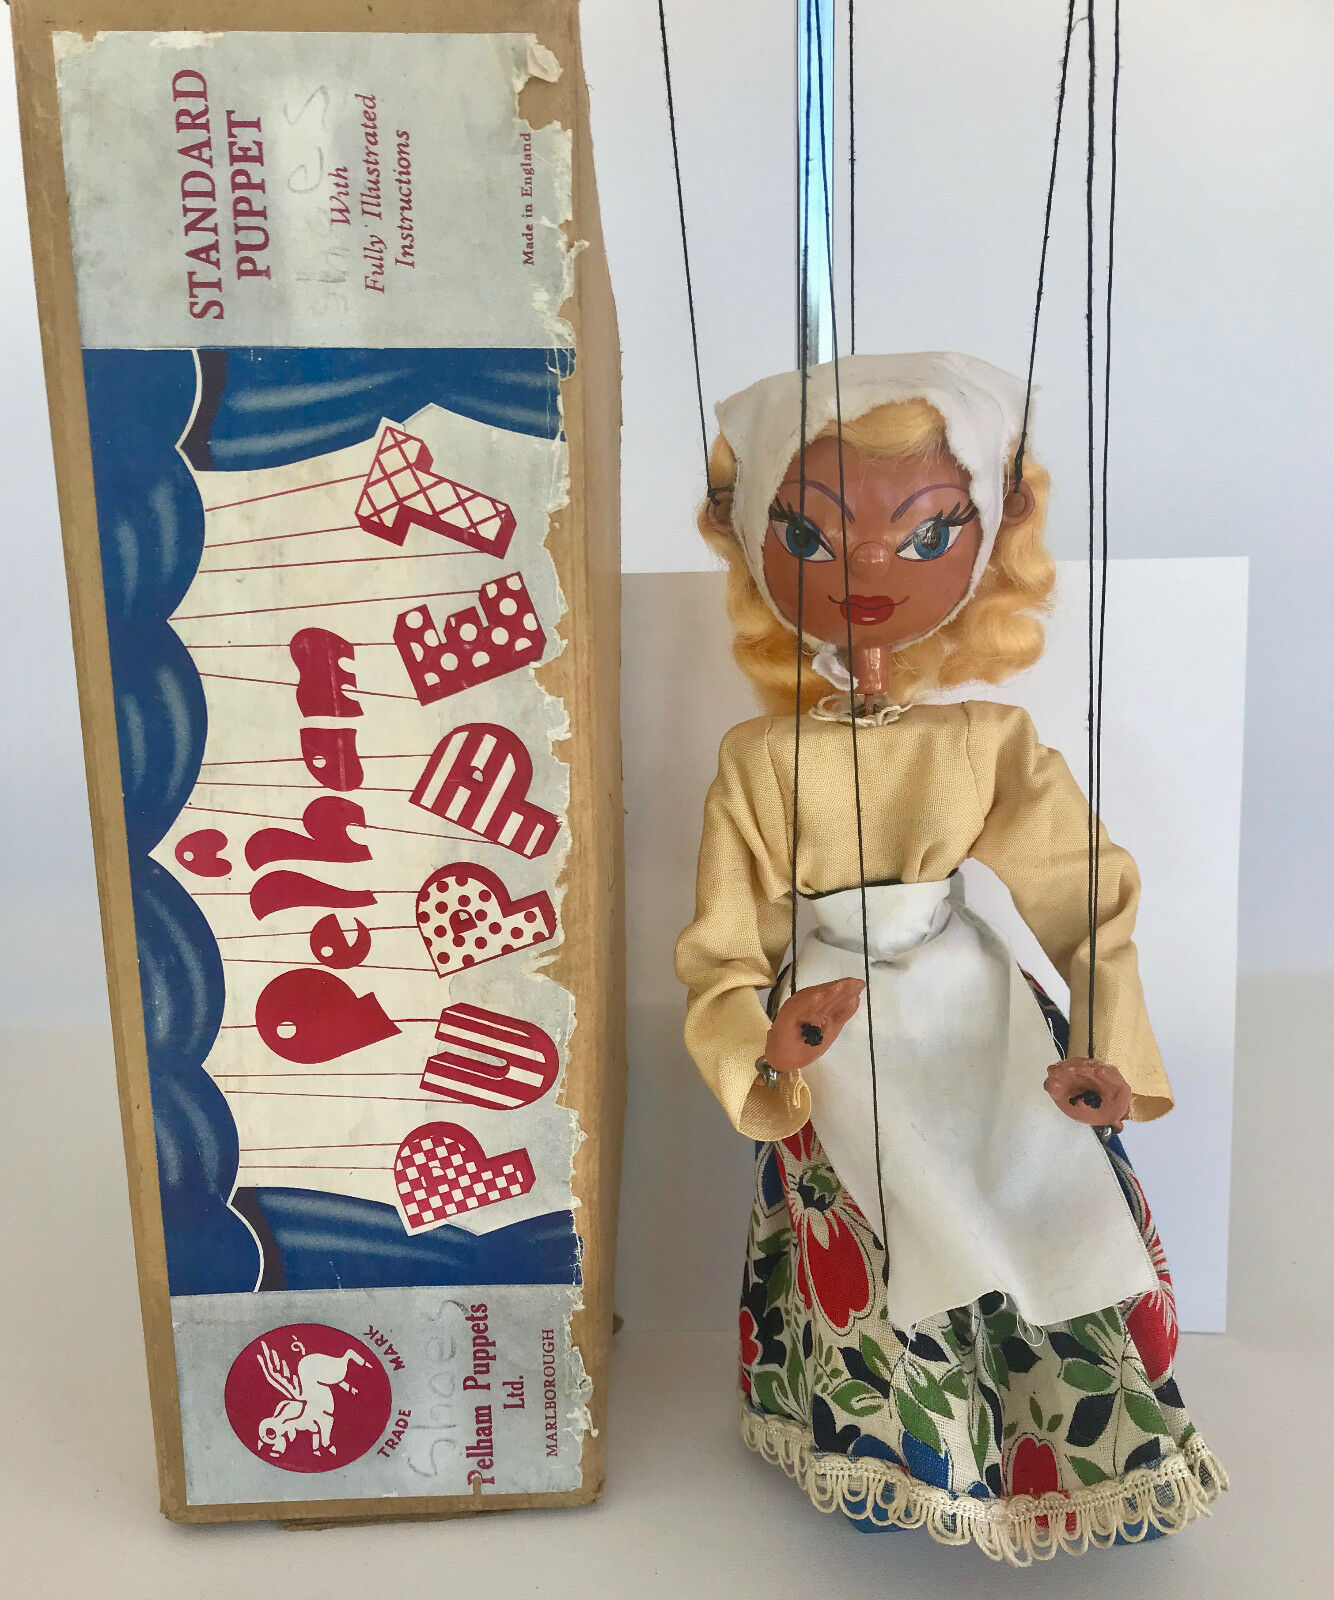 PELHAM PUPPET SS  DUTCH GIRL  WITH ORIGINAL BROWN BOX, VINTAG C1950